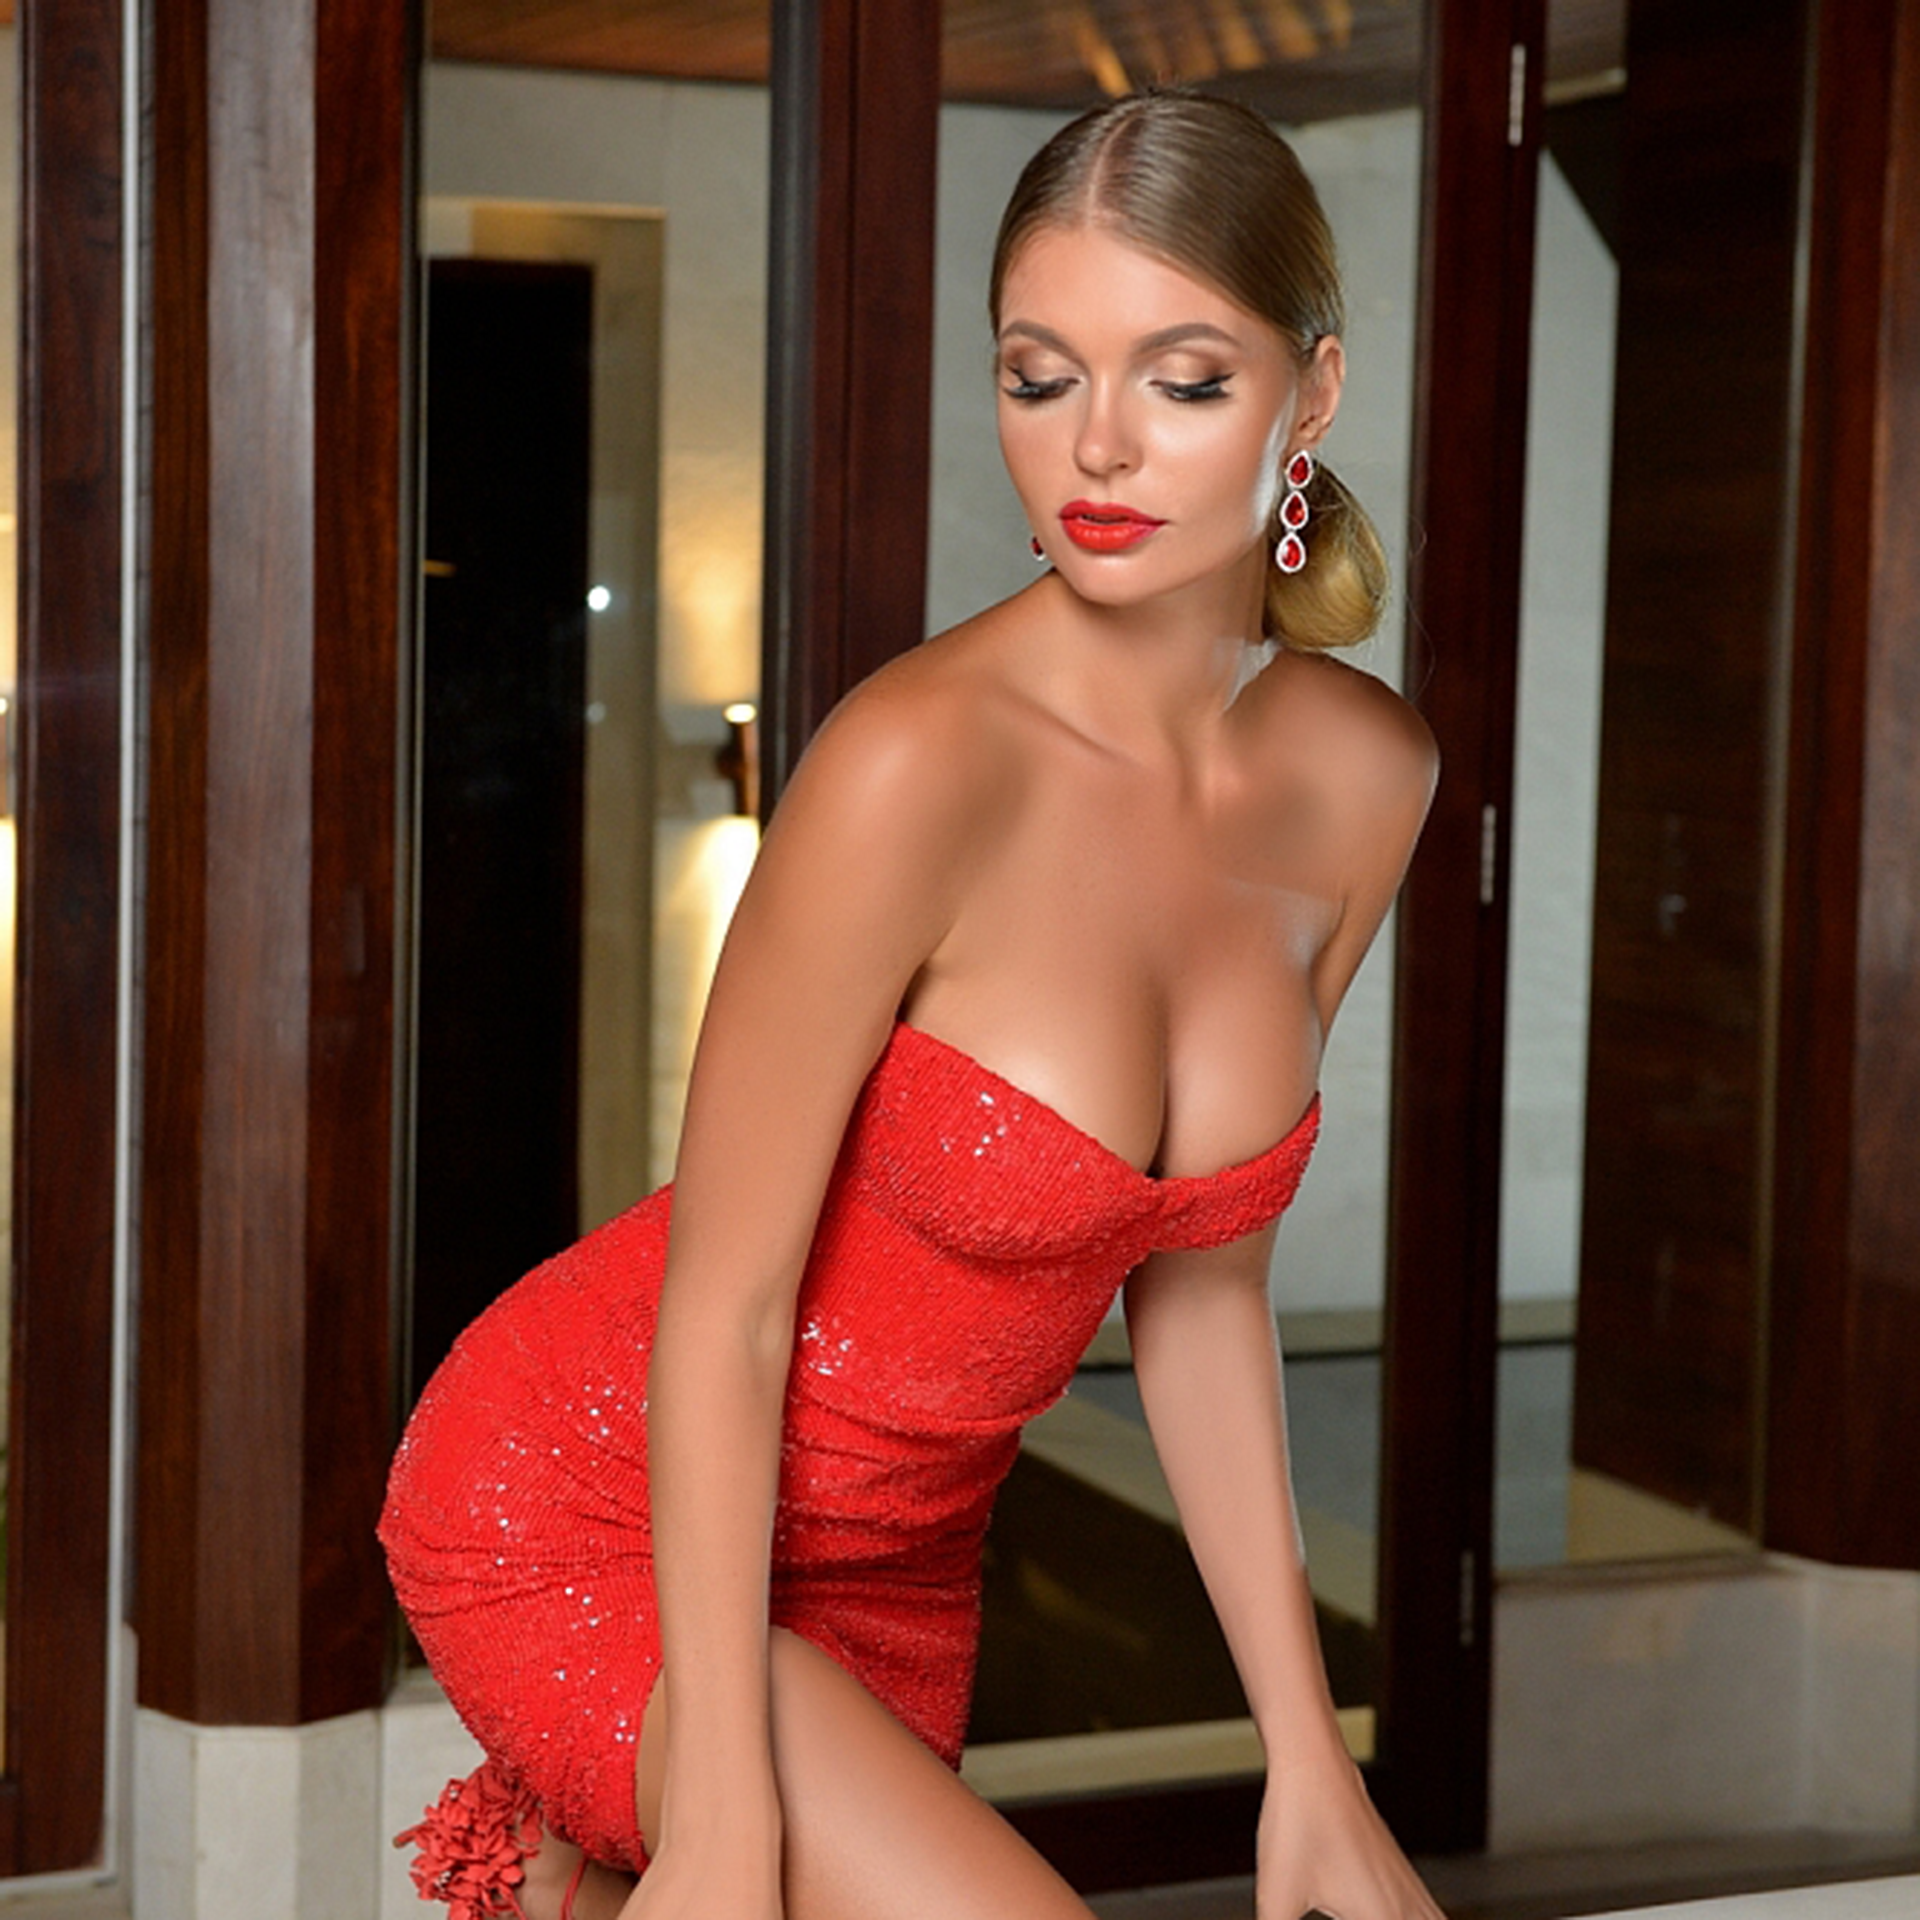 Upscale model Anna provides elite service in Palm Beach, FL